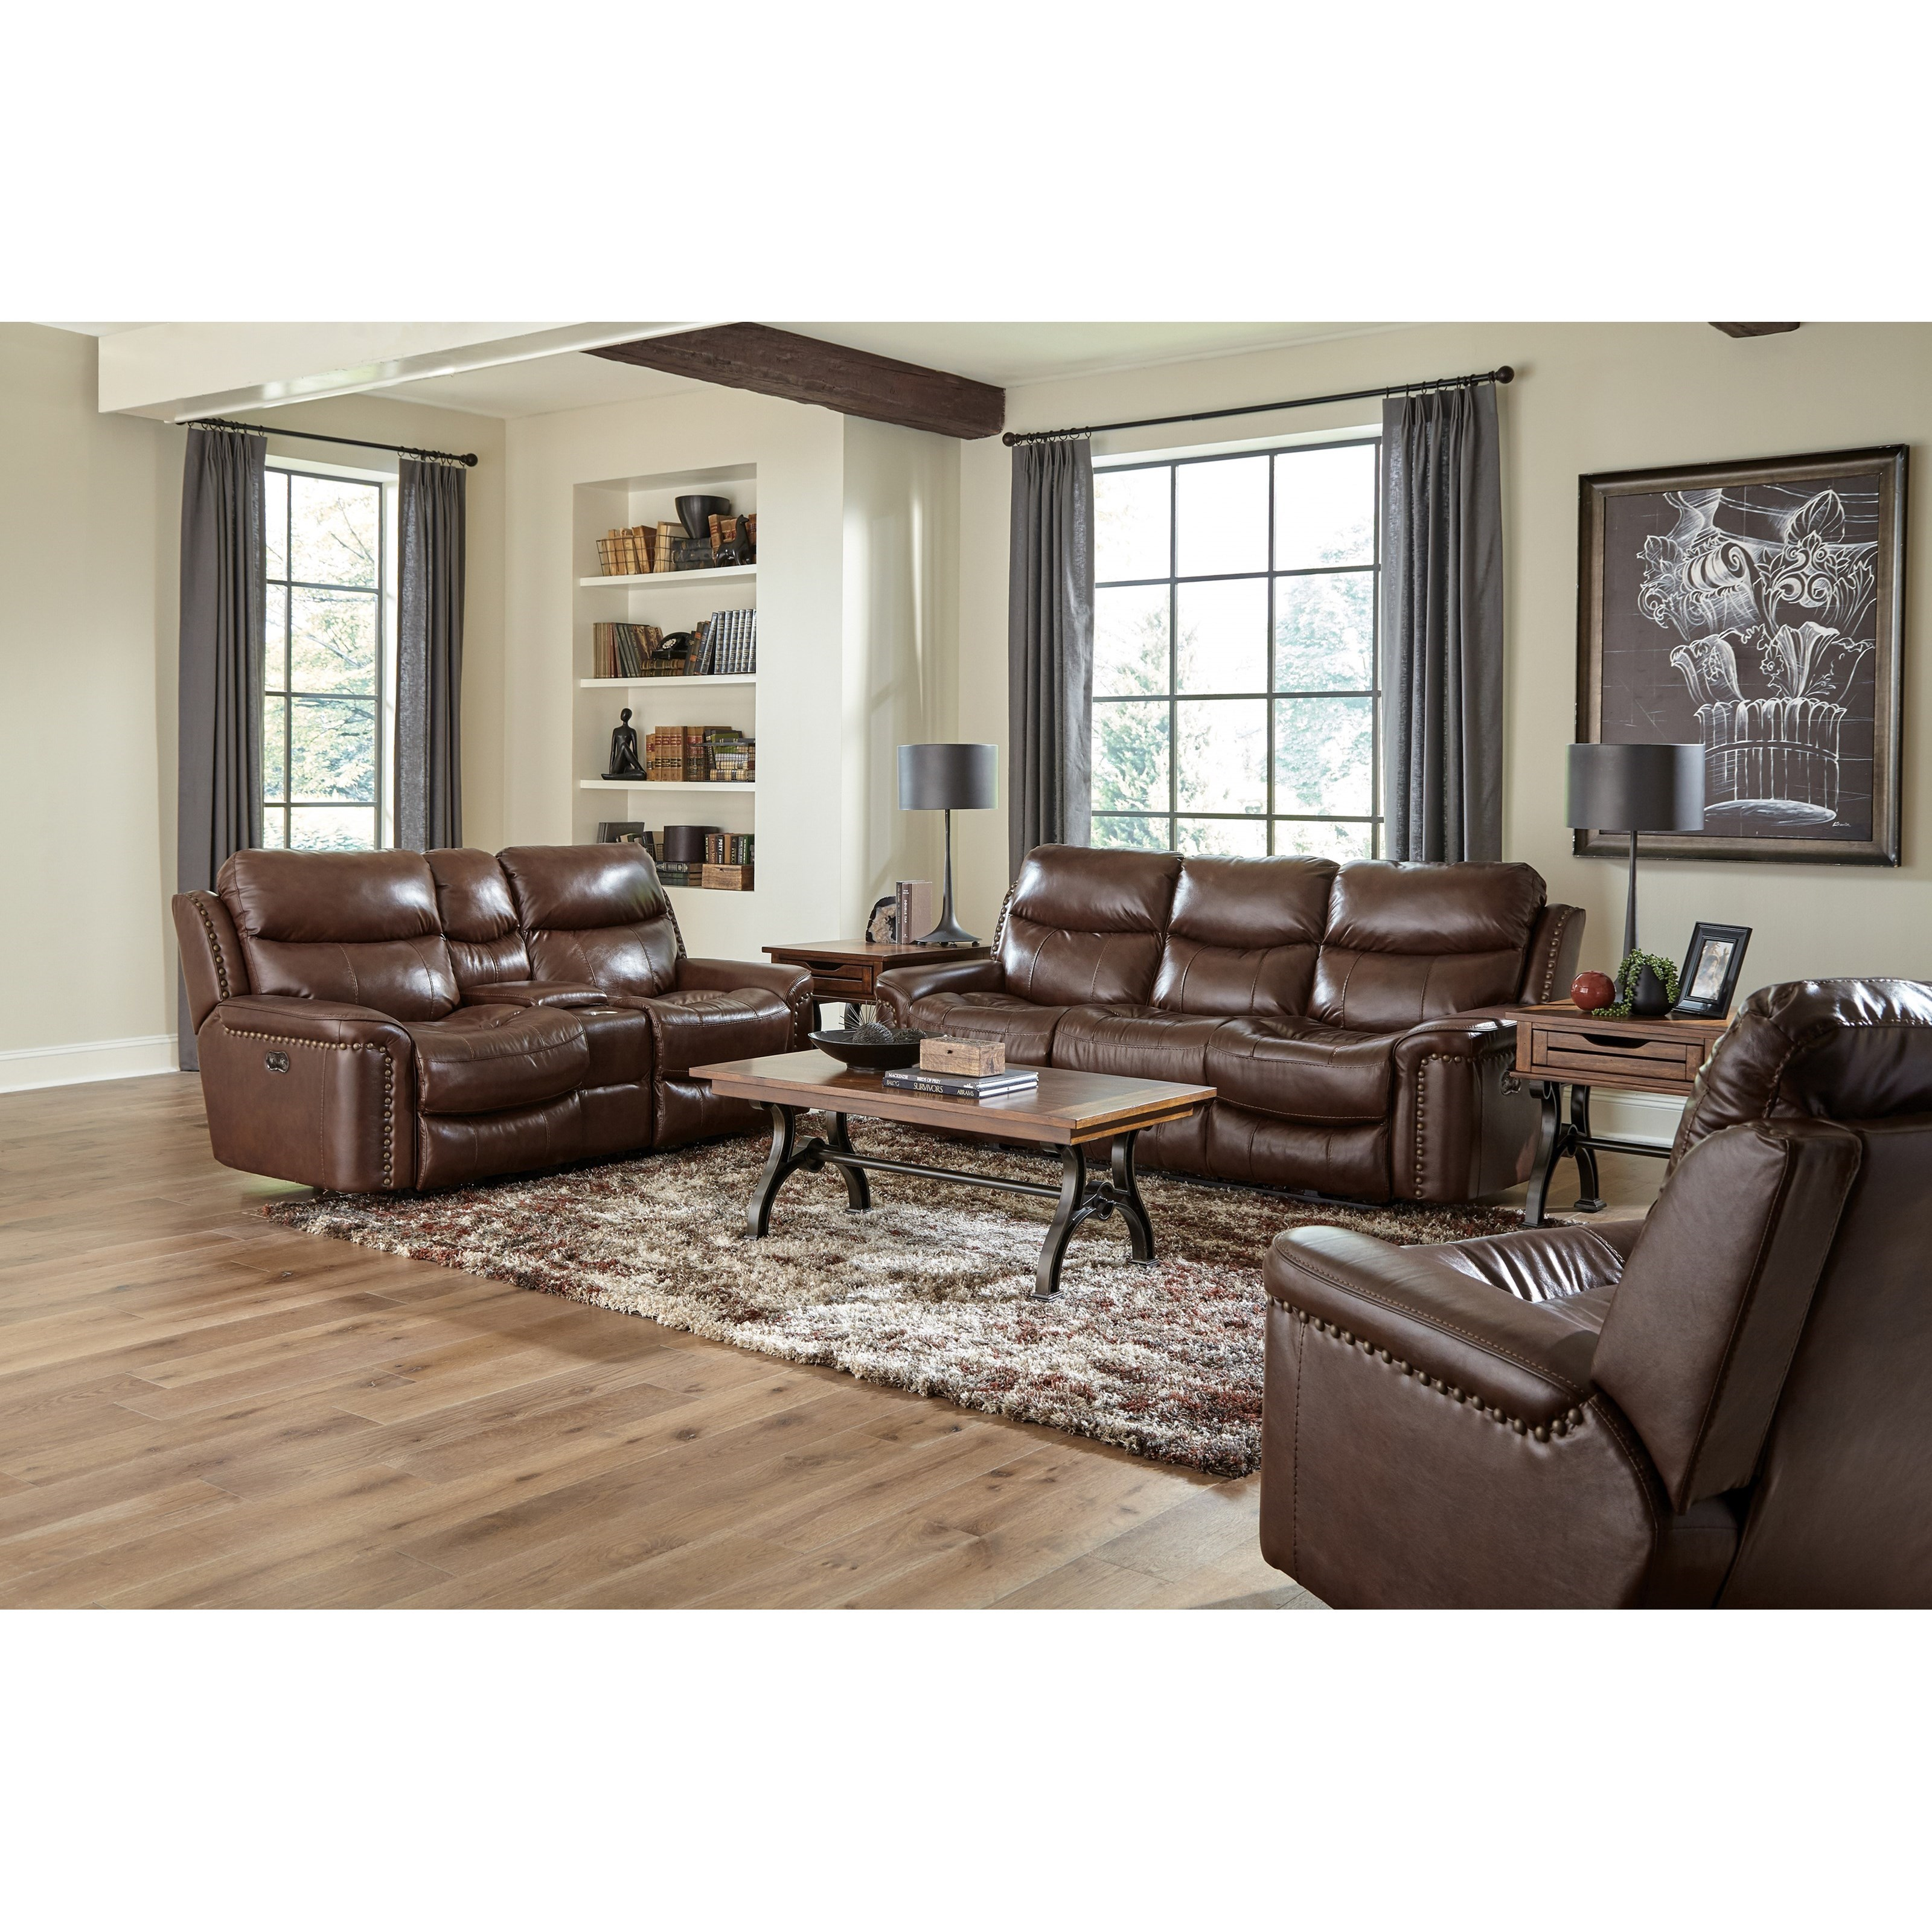 Ceretti Power Reclining Living Room Group by Catnapper at Northeast Factory Direct